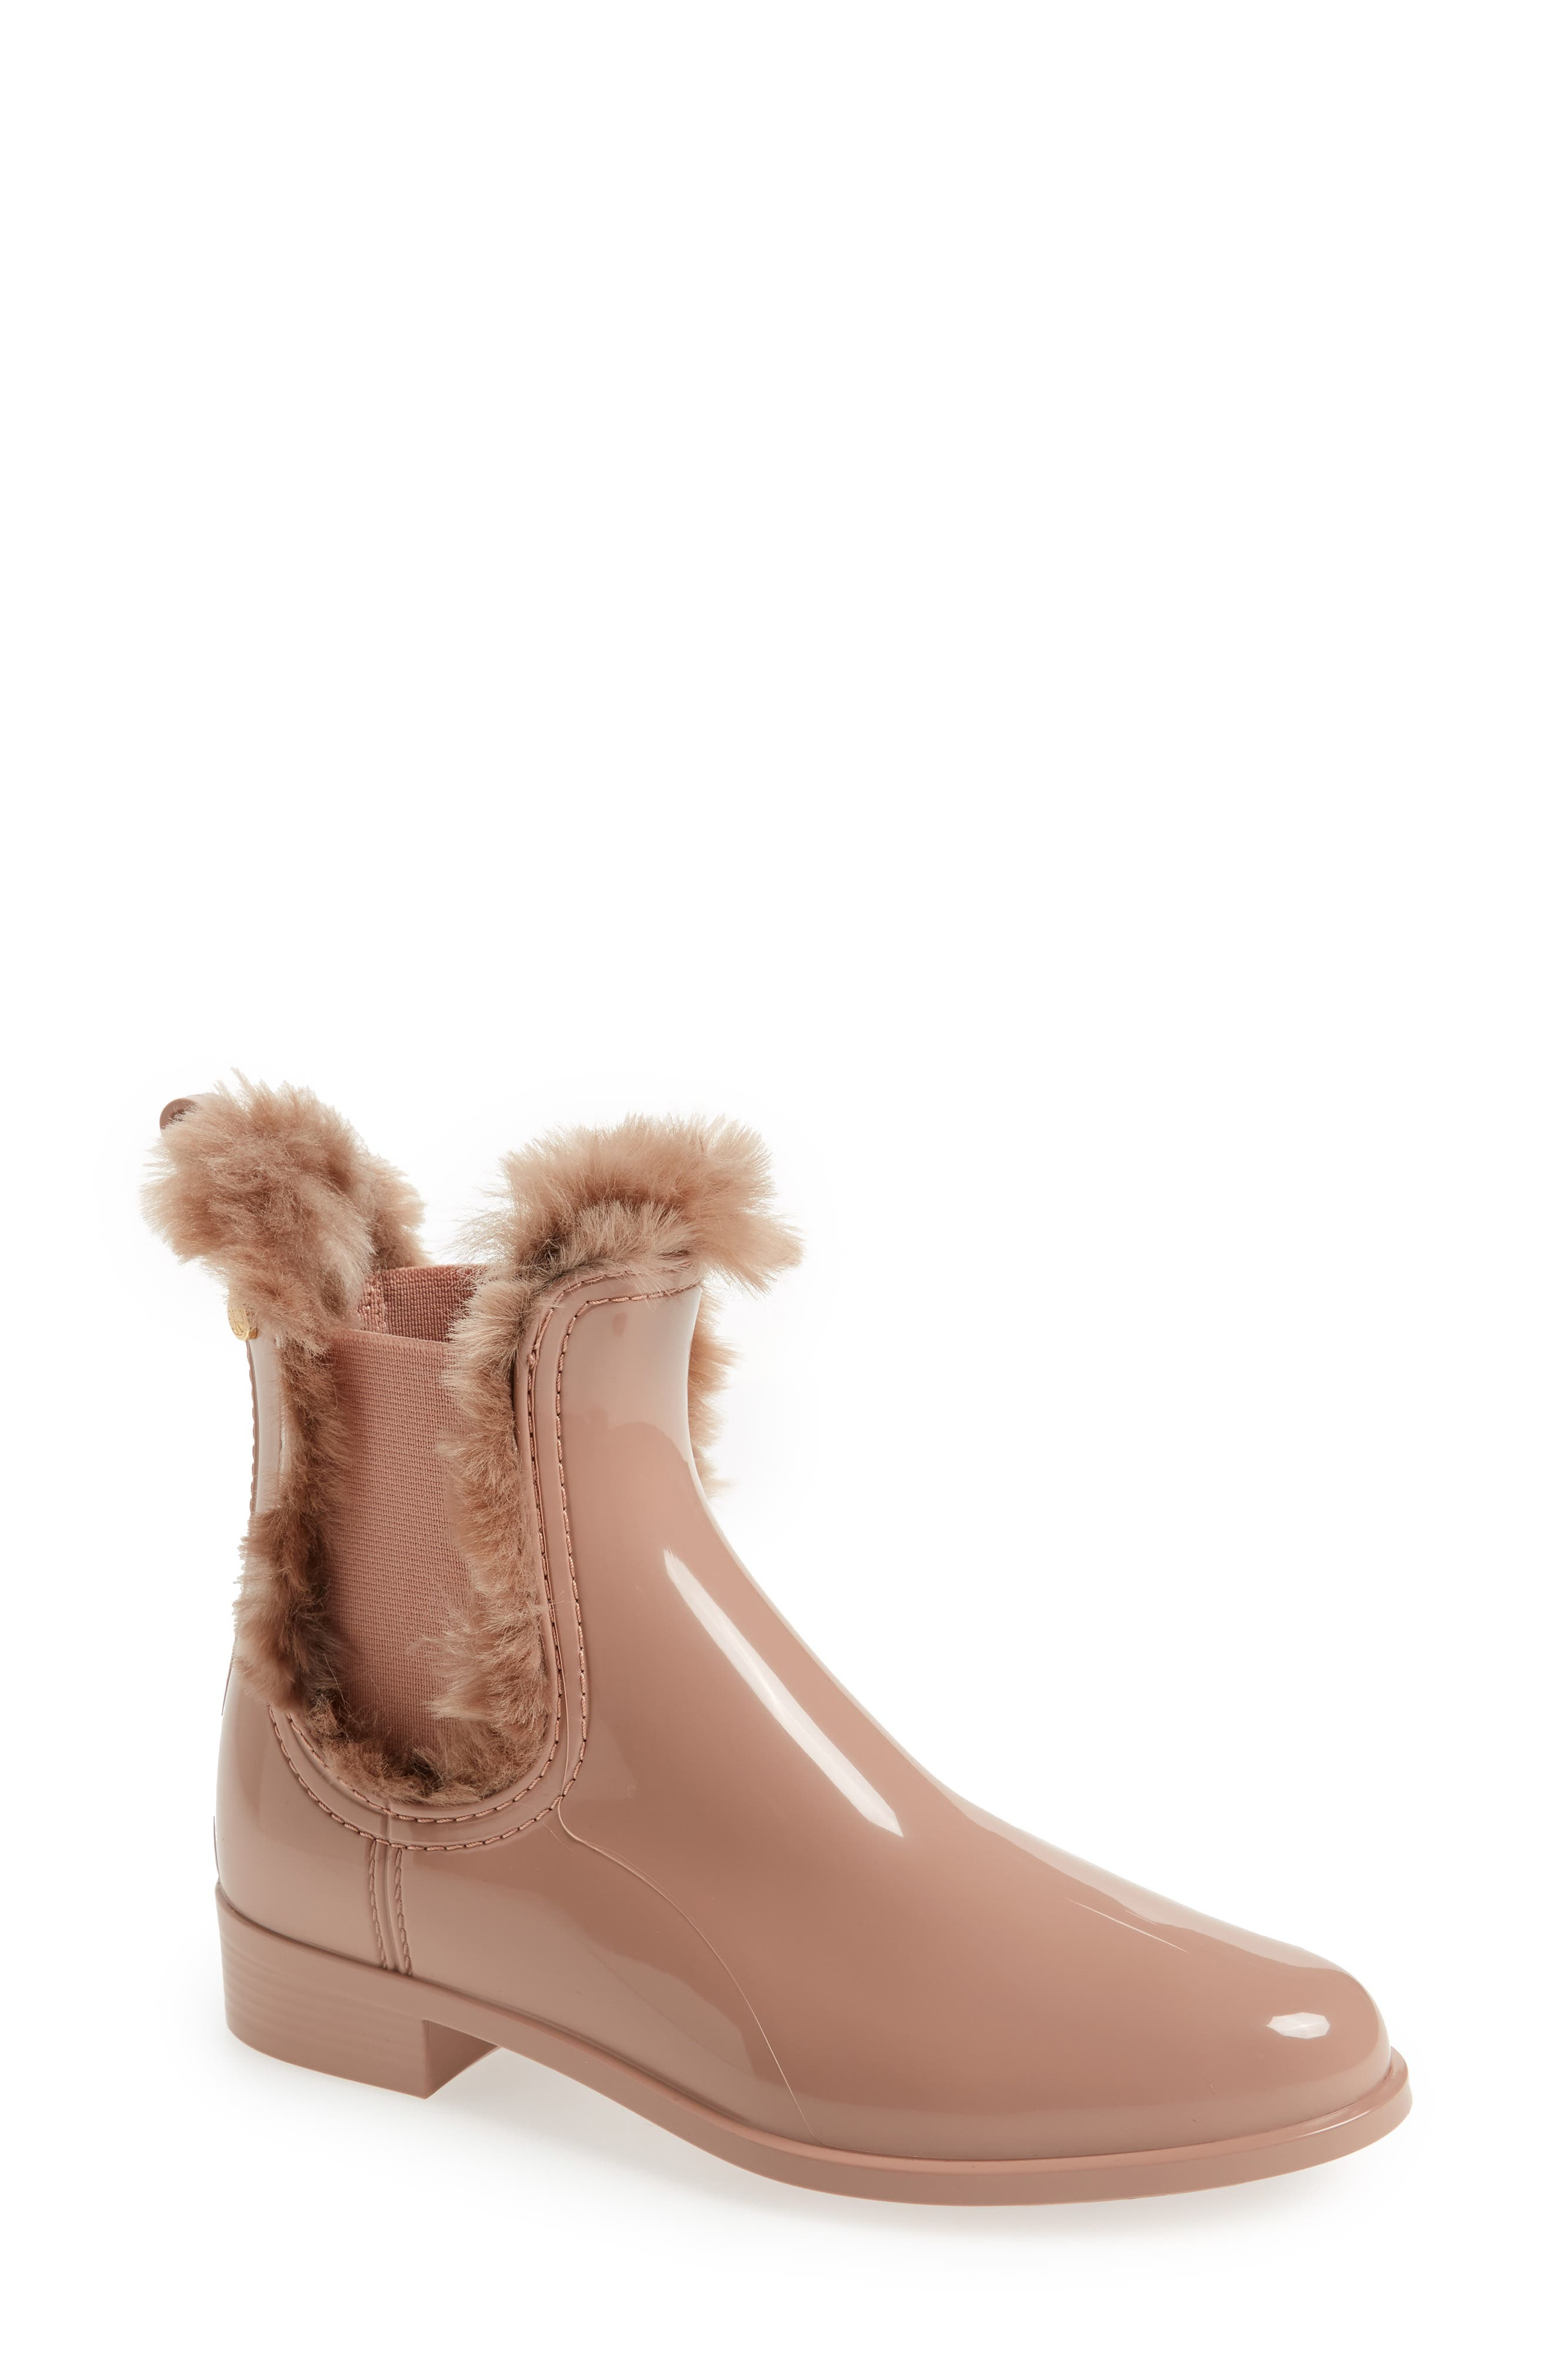 Alternate Image 1 Selected - Lemon Jelly Aisha Waterproof Chelsea Boot with Faux Fur Lining (Women)